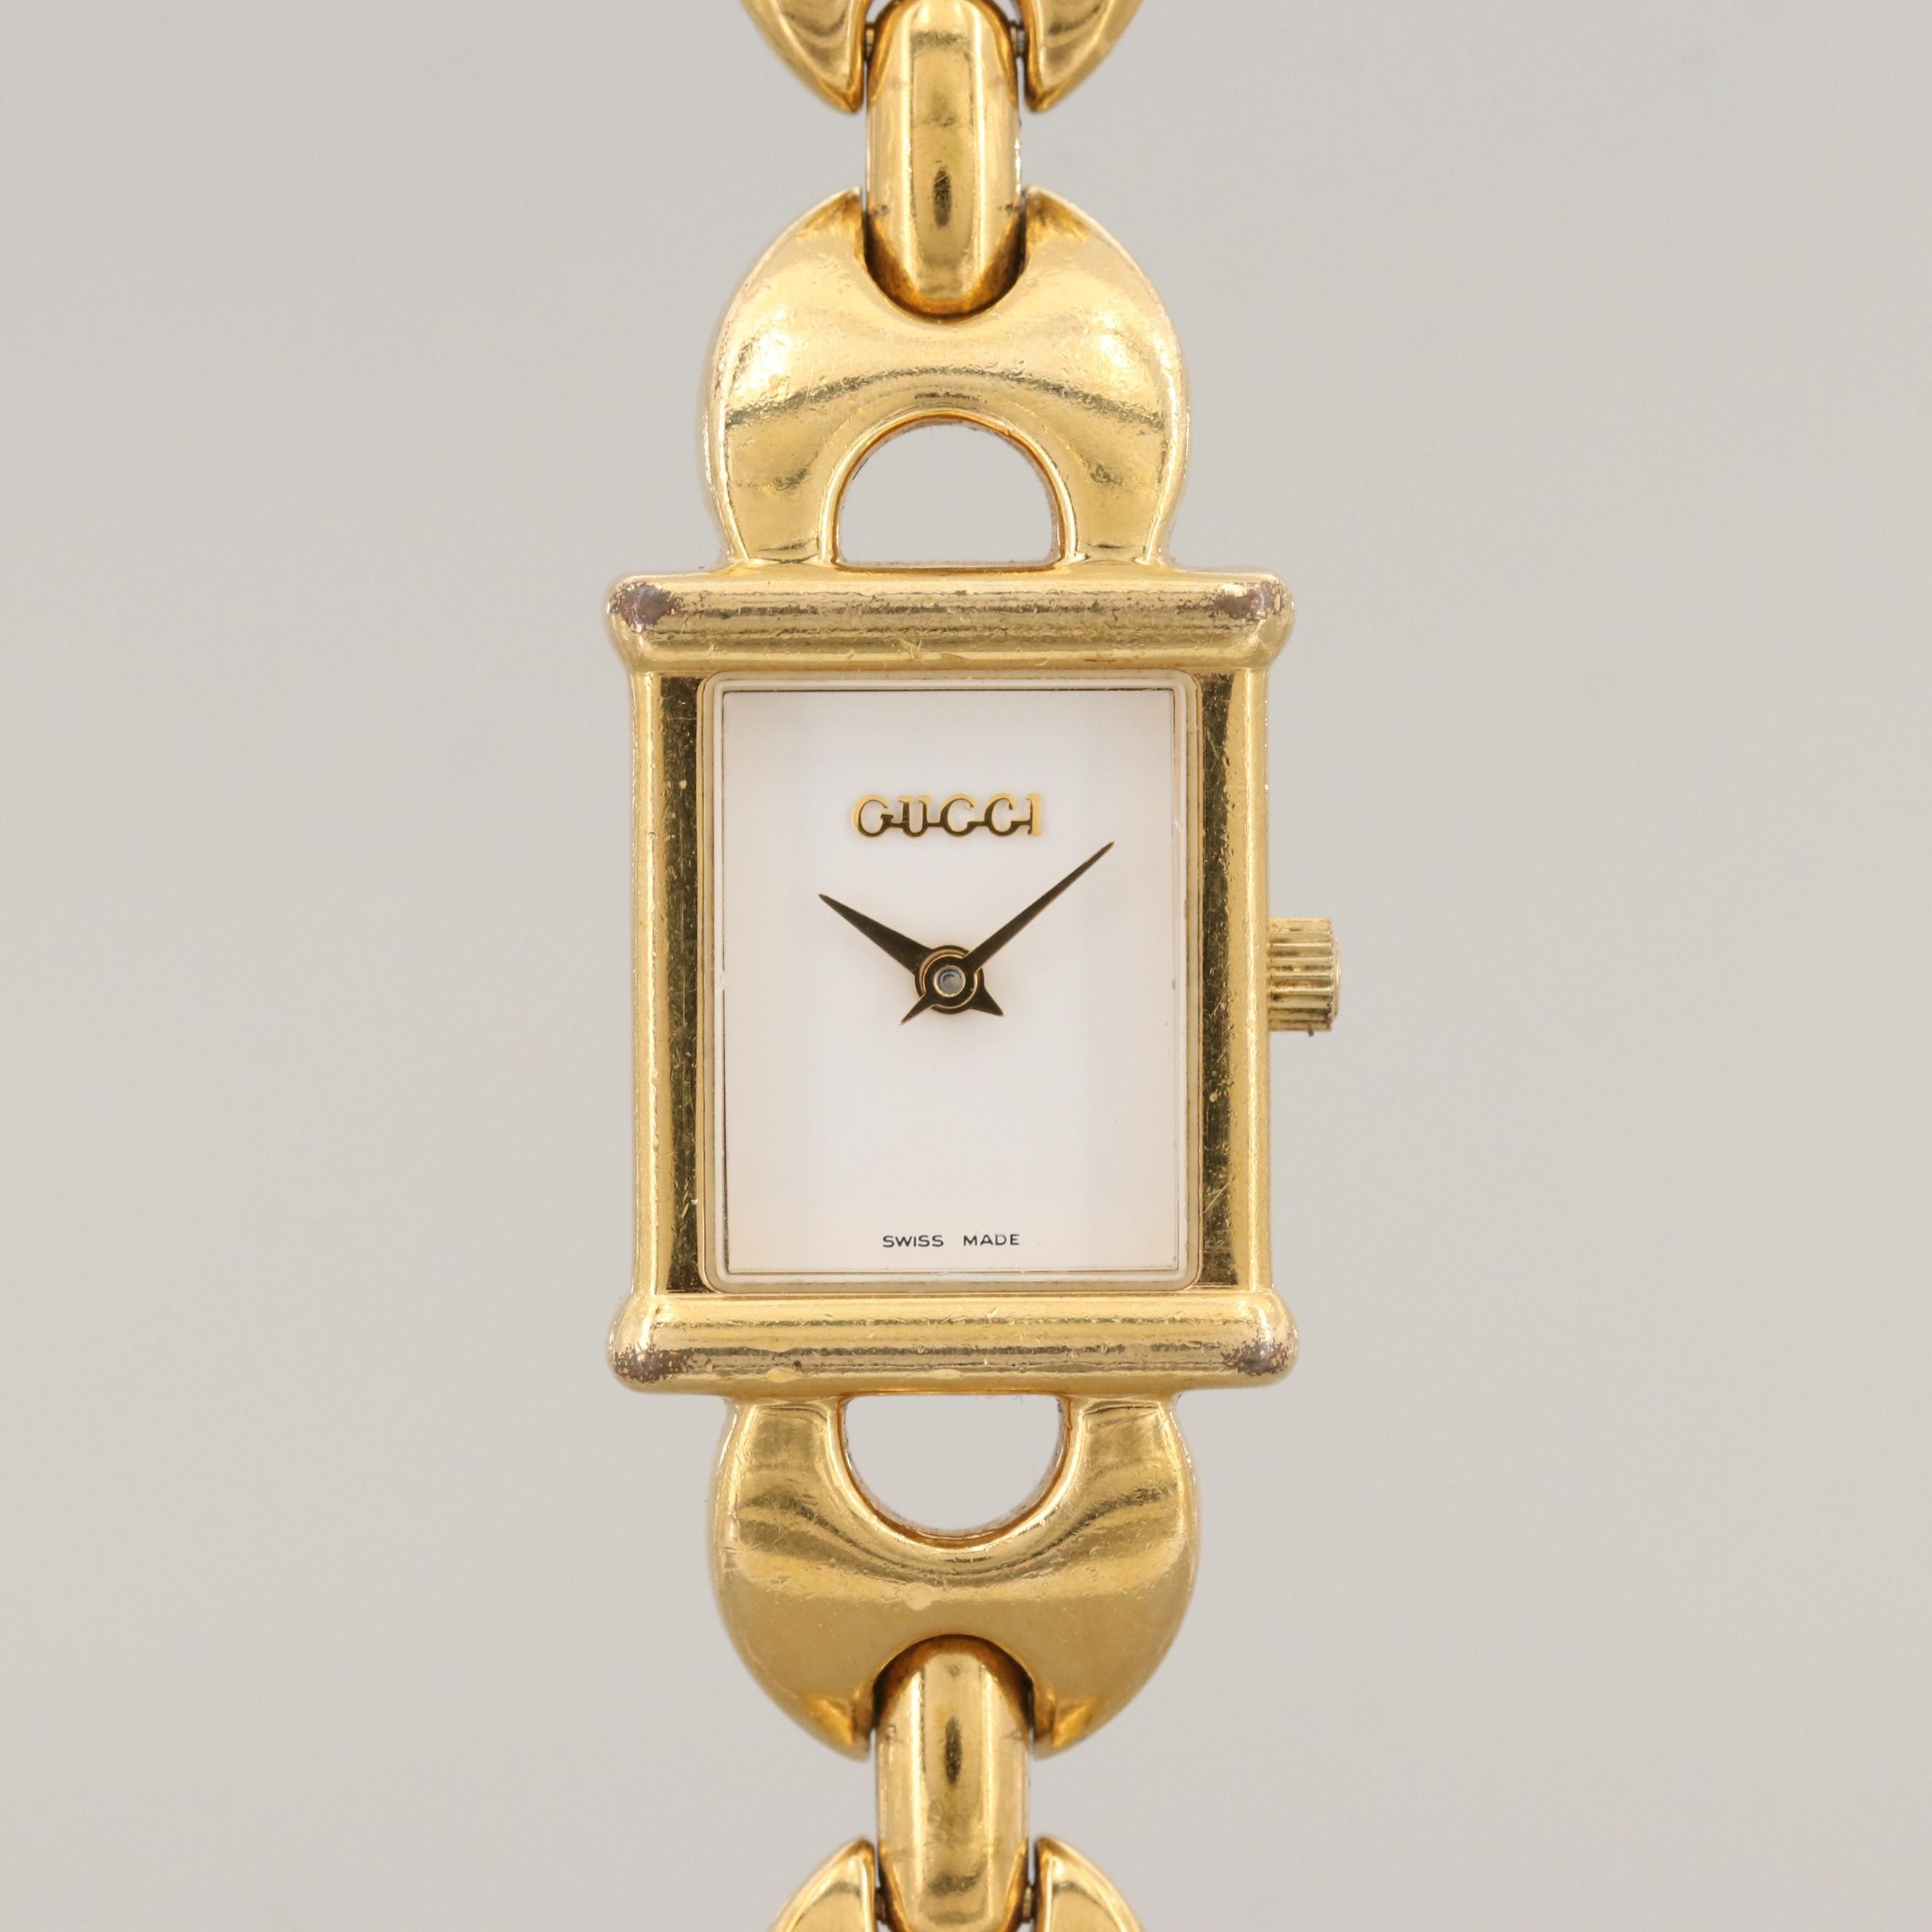 Gucci 1800L Gold Tone Quartz Wristwatch